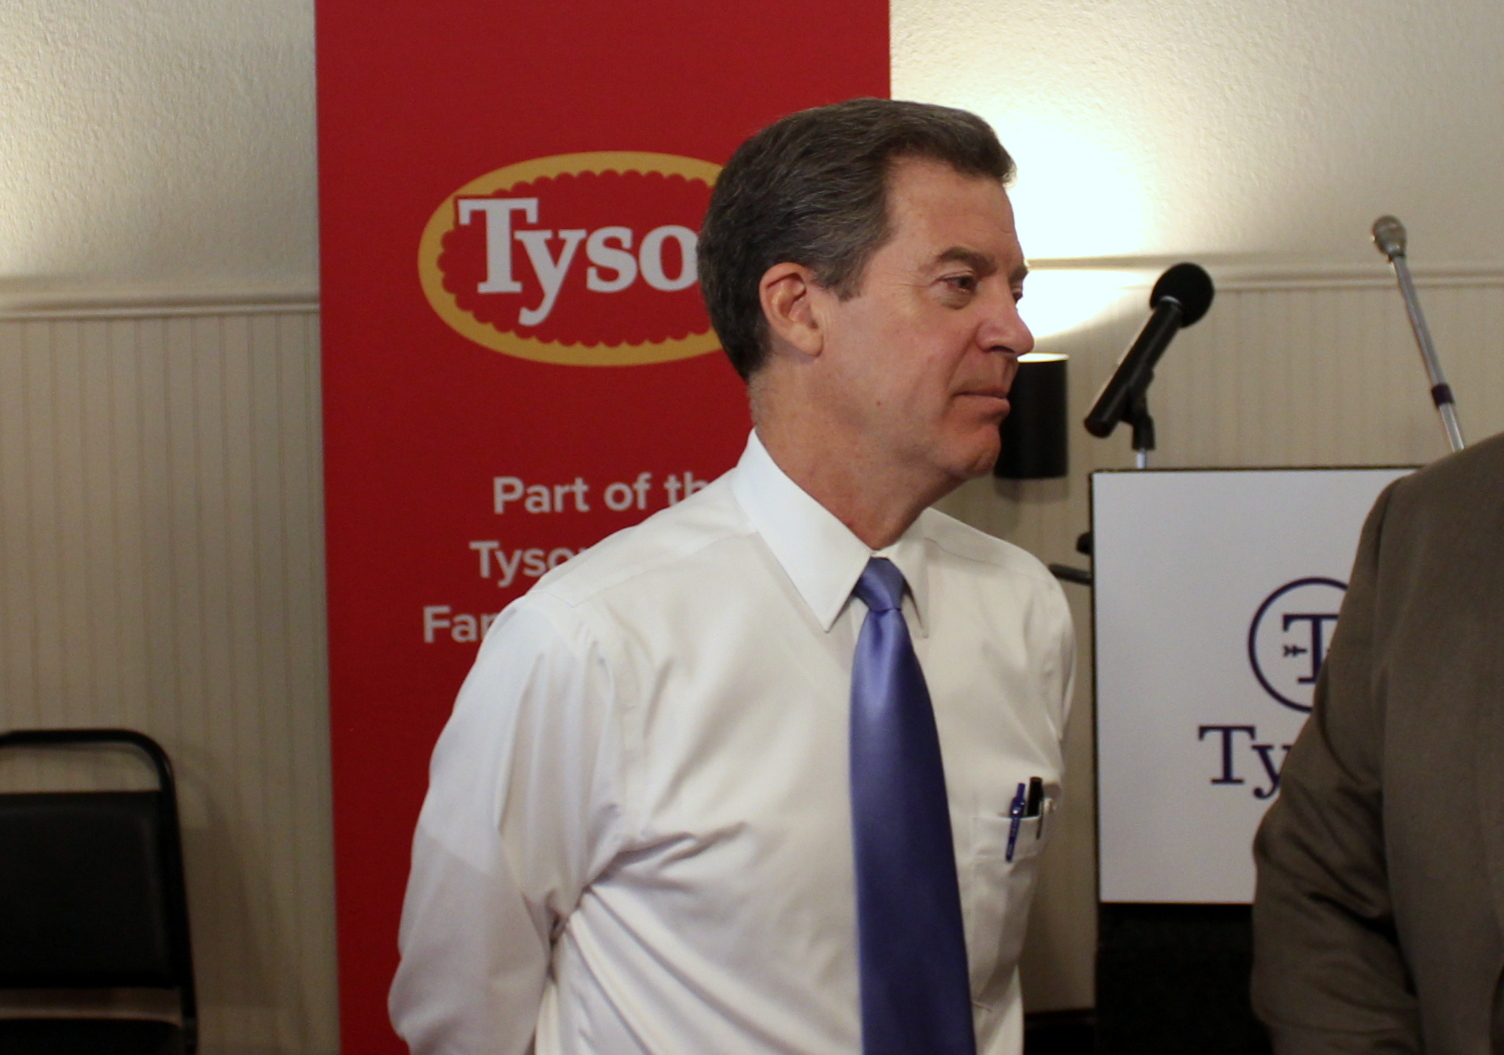 Governor Sam Brownback hailed the announcement as economic growth in the agriculture sector. (Photo by Stephen Koranda)